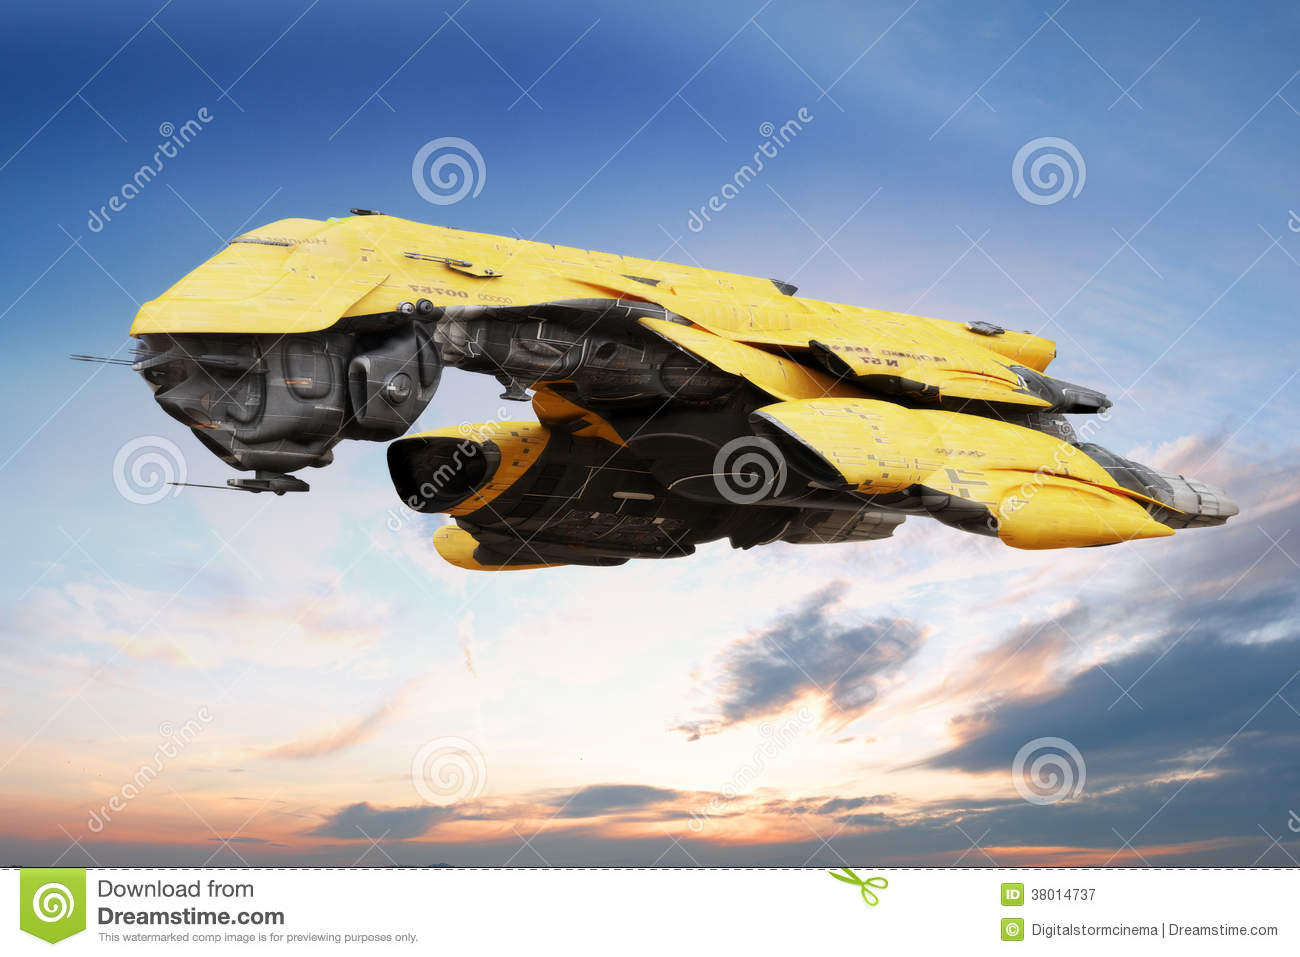 Science fiction scene of a futuristic ship flying through the atmosphere.